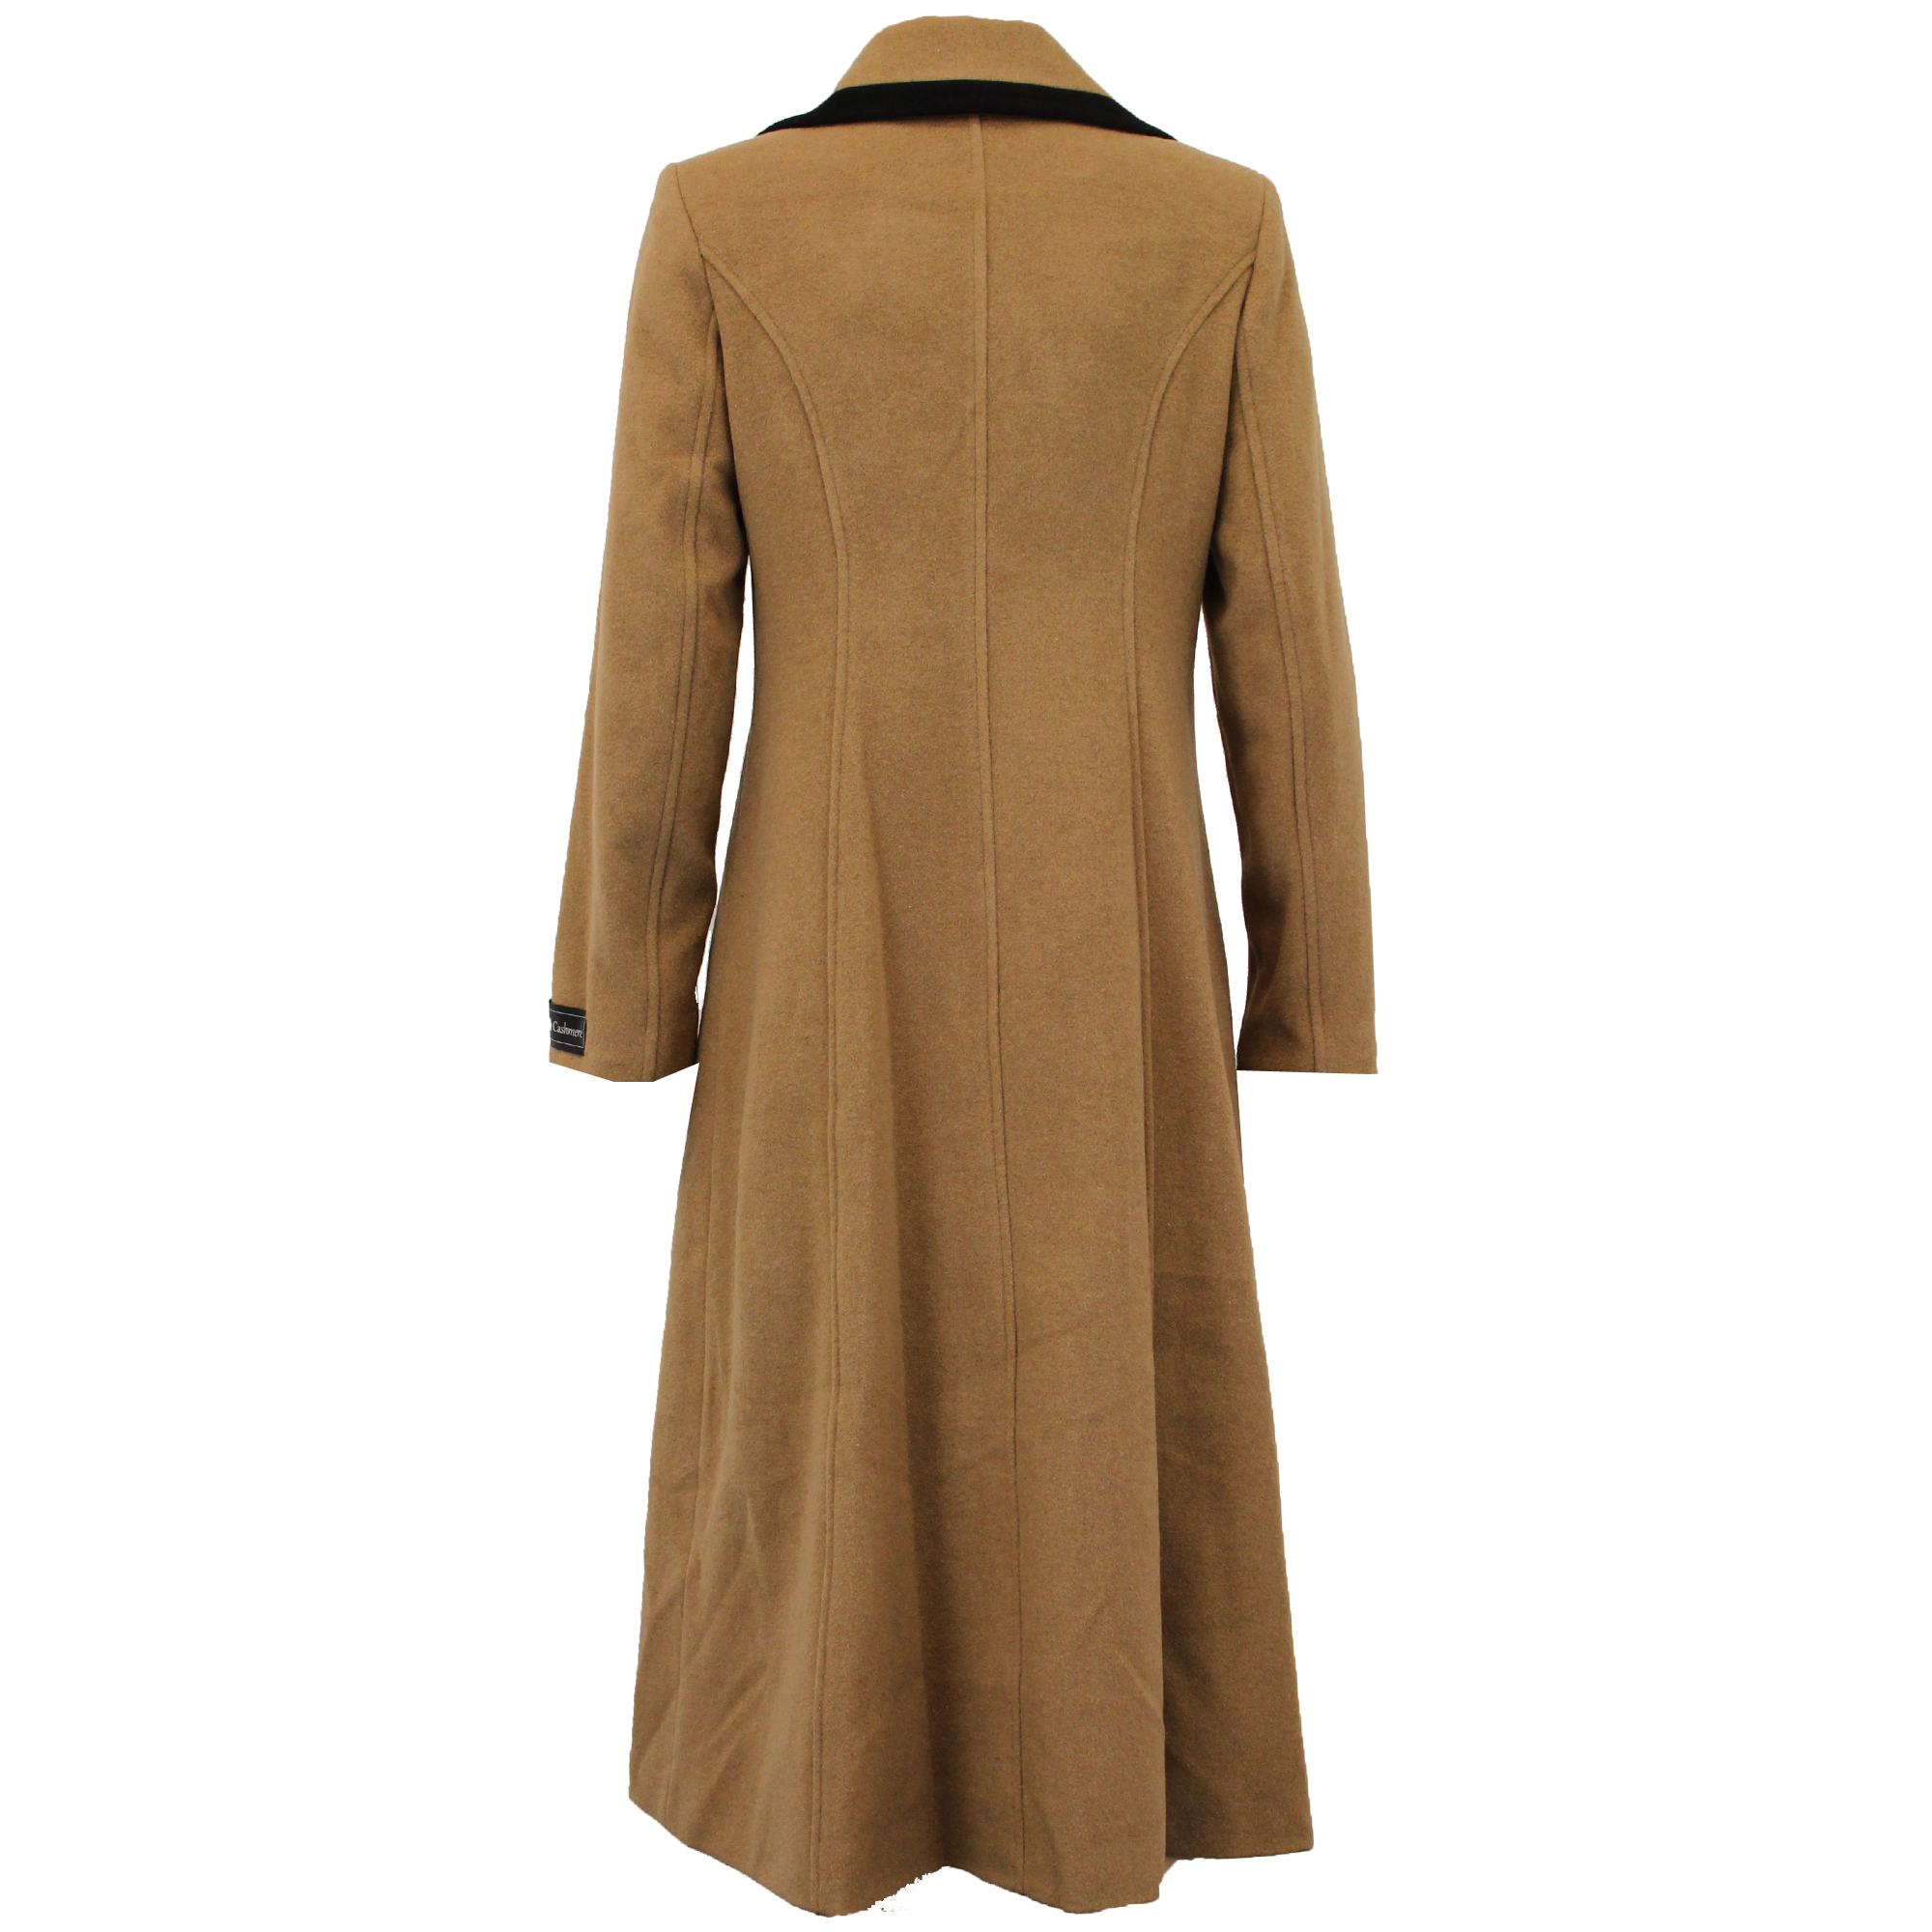 Ladies-Wool-Cashmere-Coat-Women-Jacket-Outerwear-Trench-Overcoat-Winter-Lined thumbnail 34